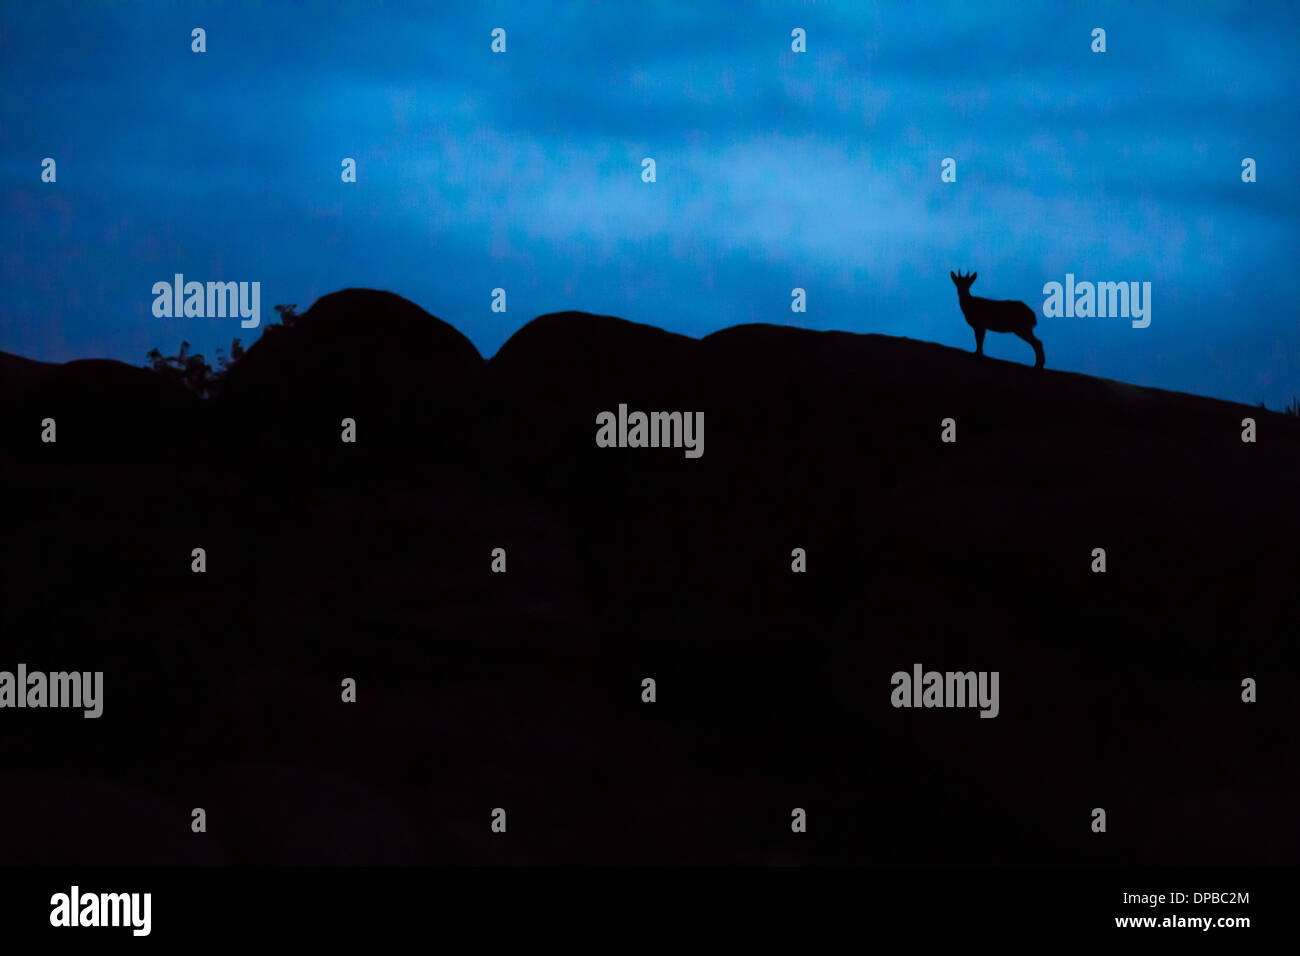 Spain, Madrid, La Pedriza, young Spanish wild goat, capra pyrenaica, silhouette on top of rocks Stock Photo